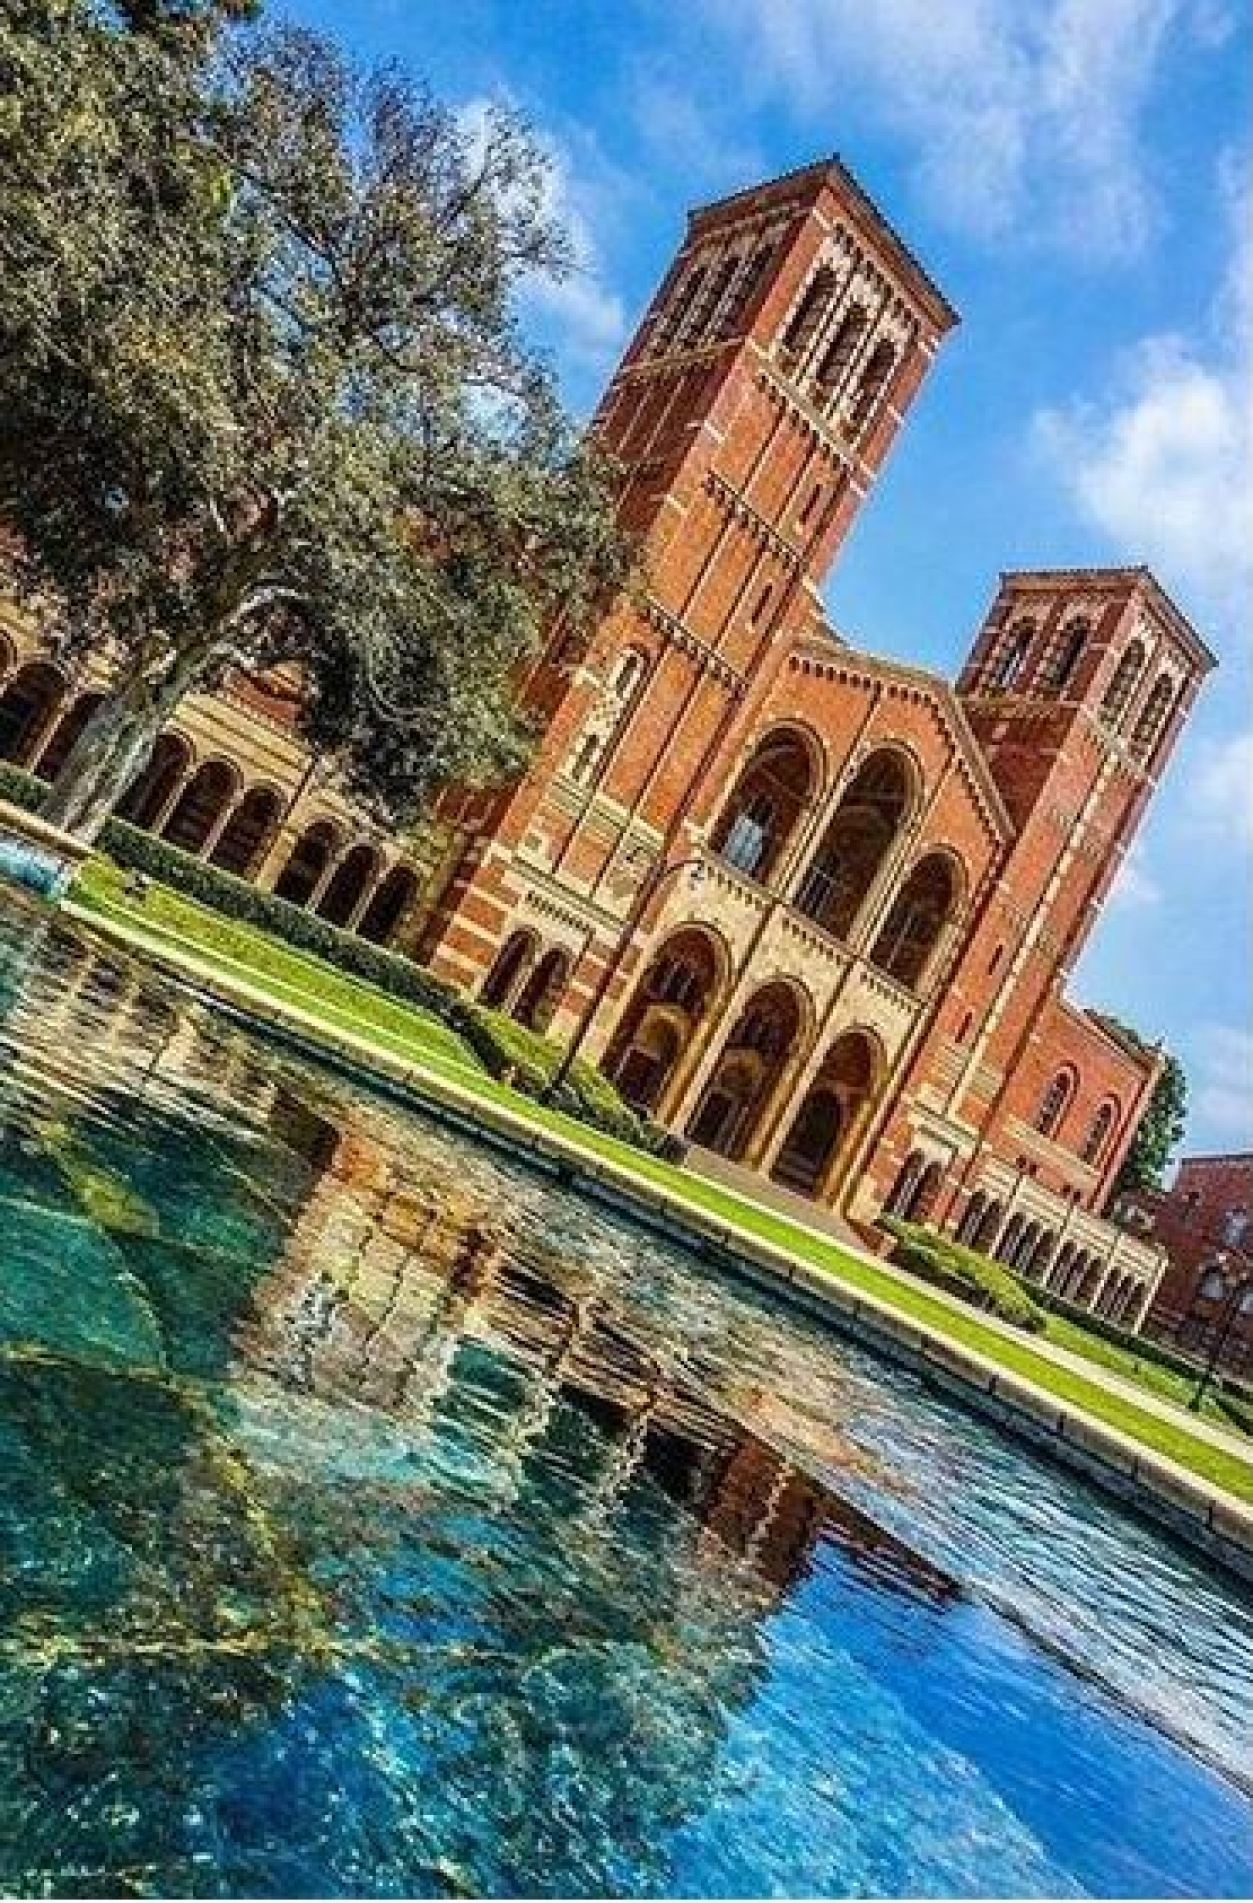 hacks every UCLA student should know